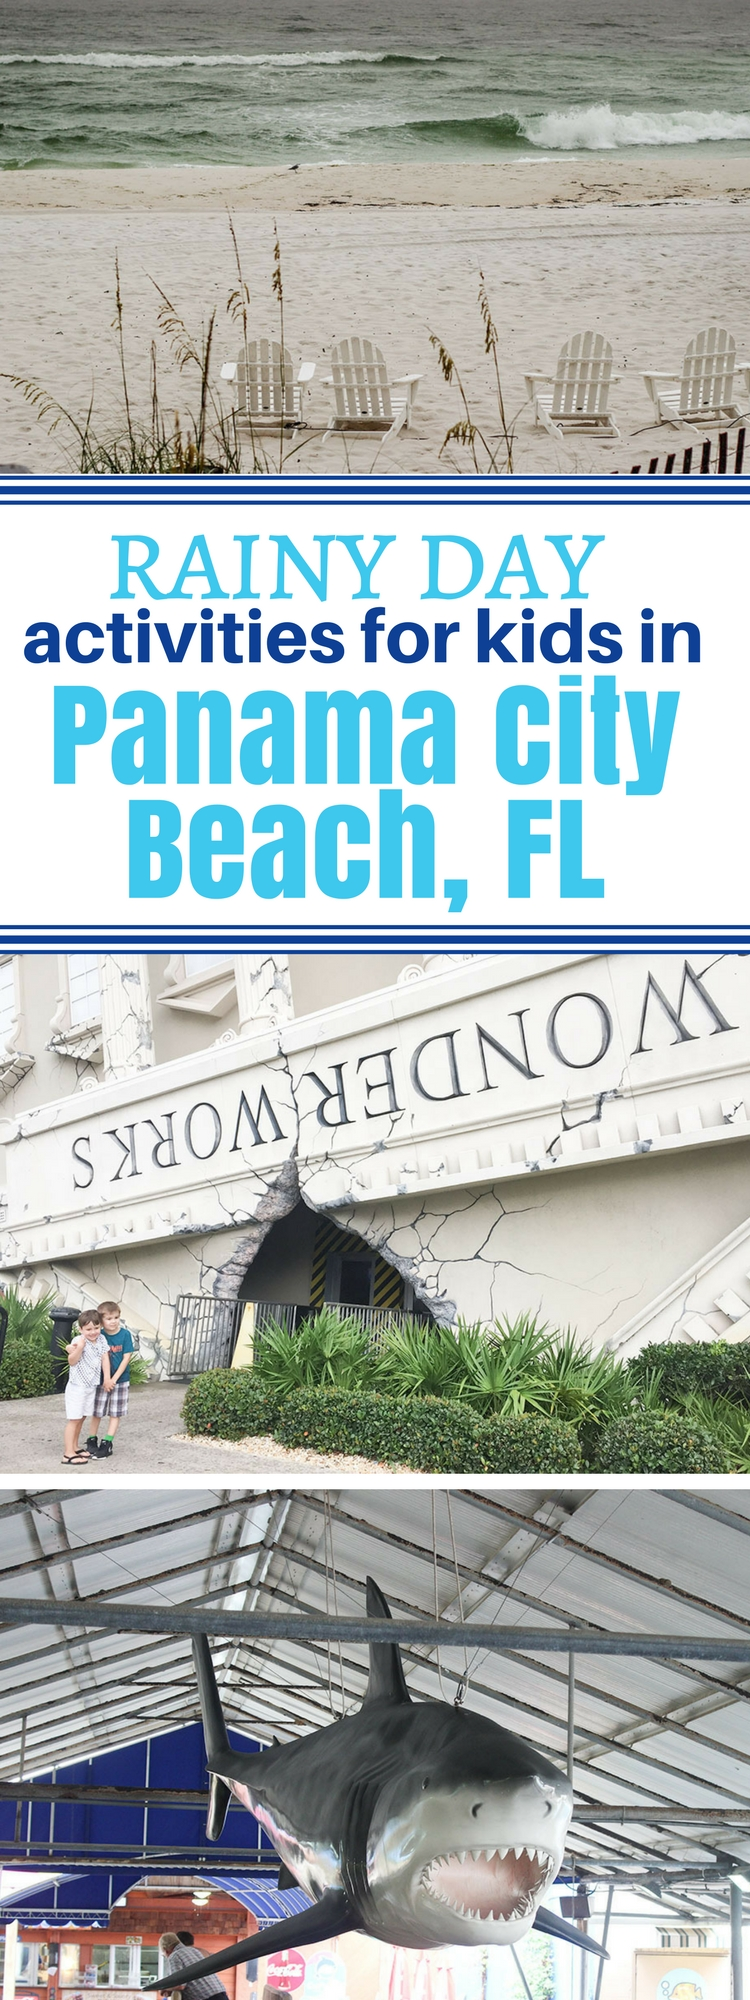 Do you know what to do when it rains on your beach vacation? This Traveling Mom has lots of tips for rainy day activities in Panama City Beach, FL.